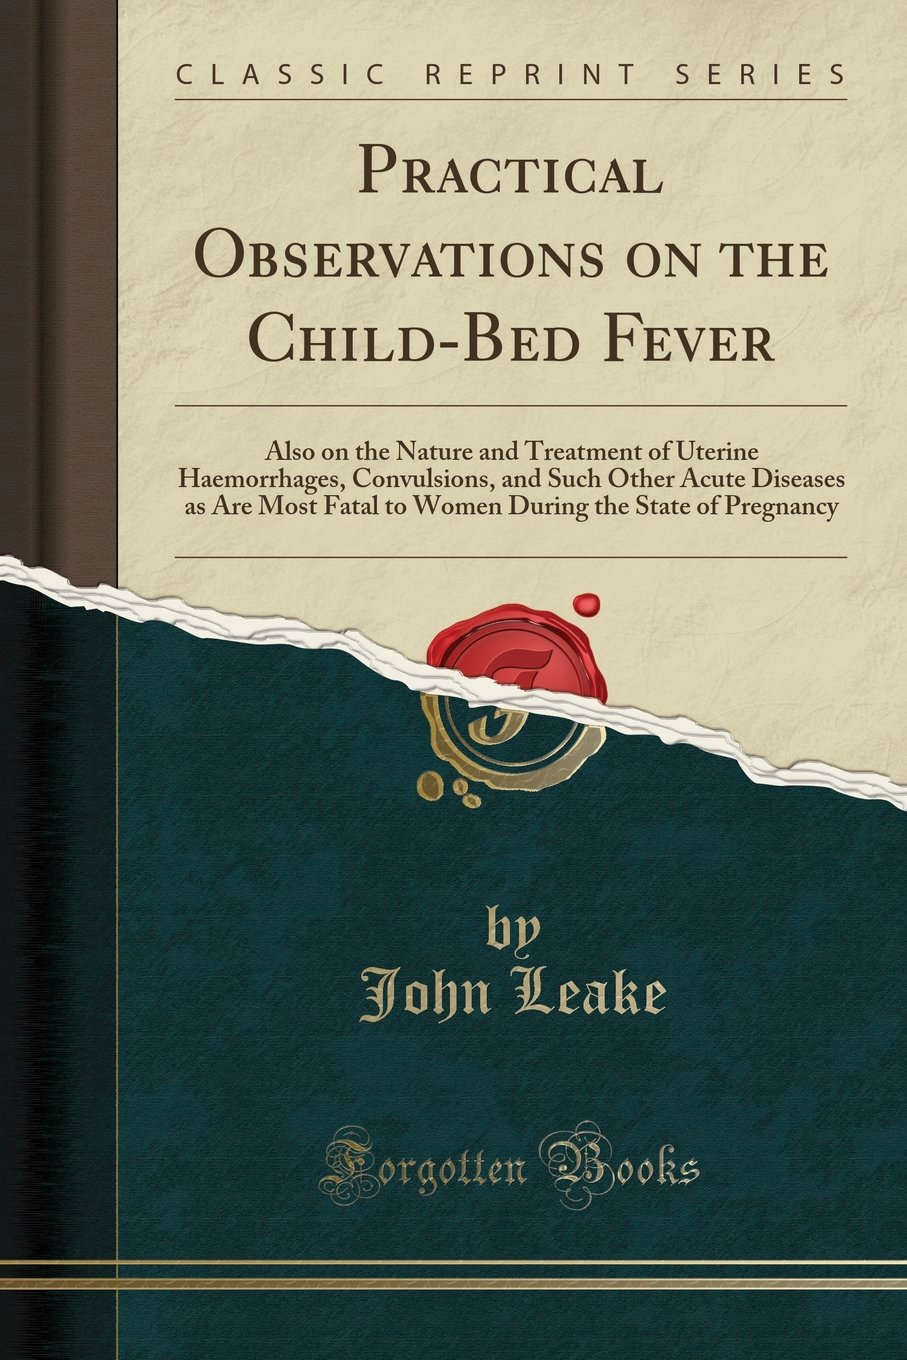 Read Online Practical Observations on the Child-Bed Fever: Also on the Nature and Treatment of Uterine Haemorrhages, Convulsions, and Such Other Acute Diseases as ... the State of Pregnancy (Classic Reprint) pdf epub